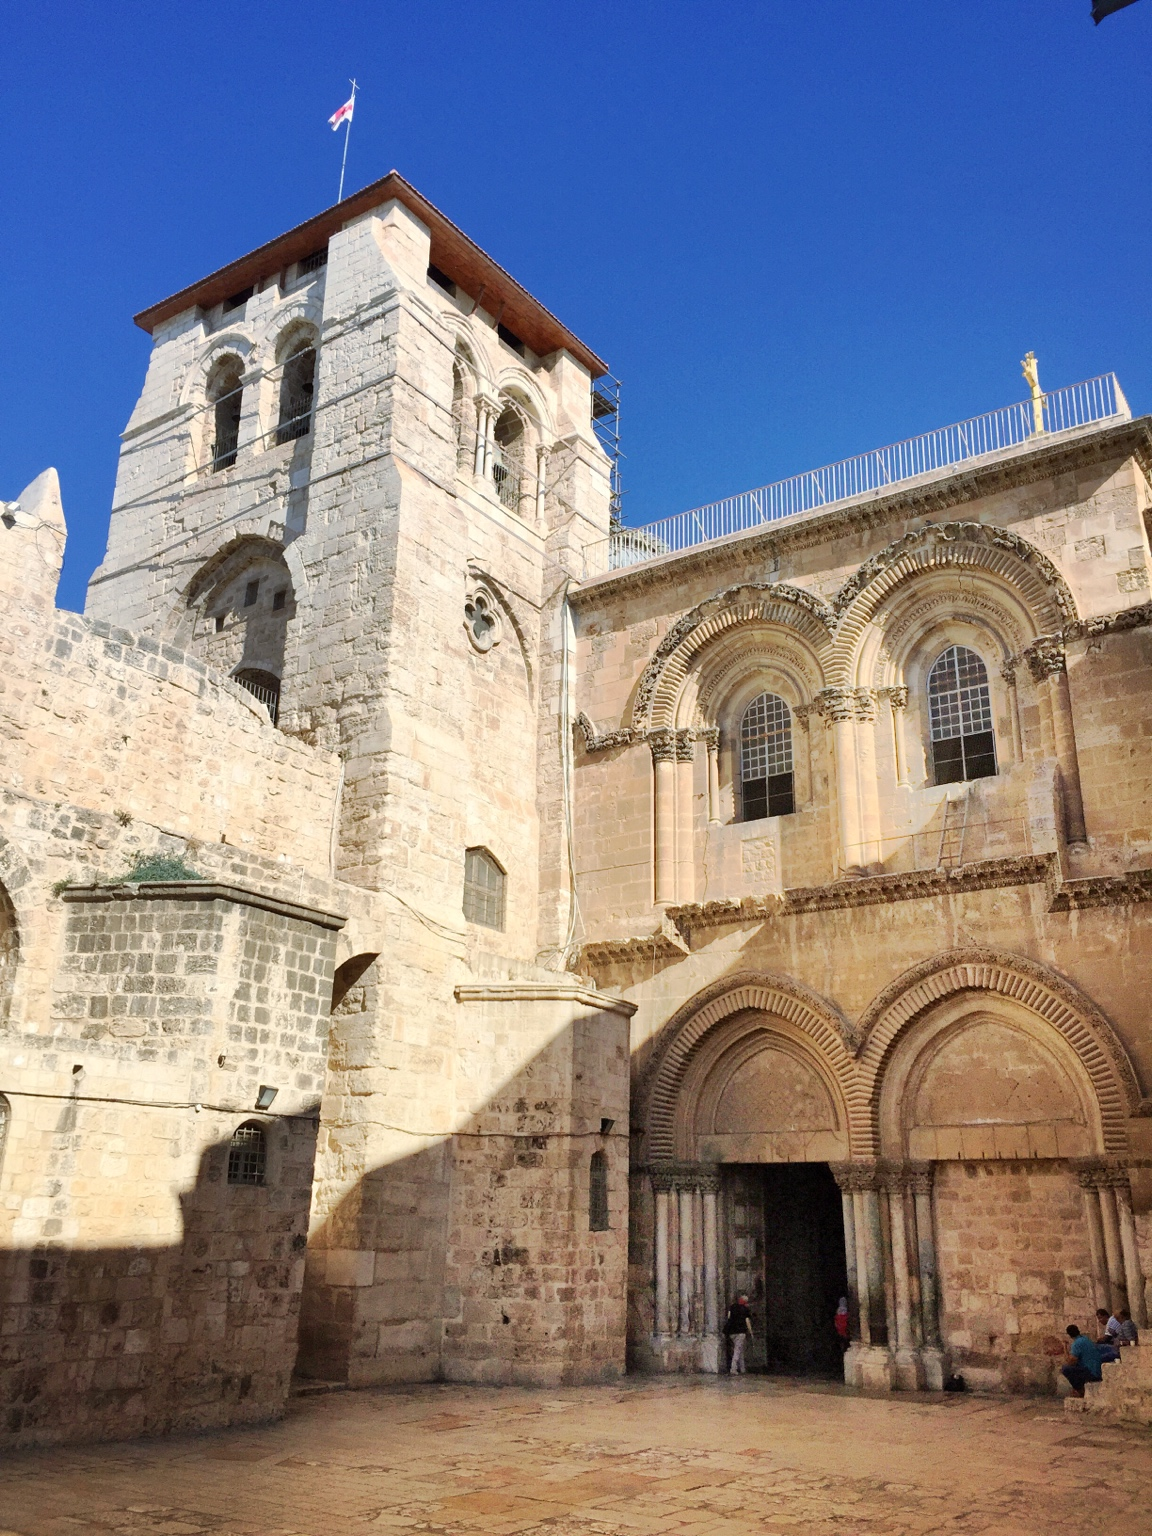 Entrance to the Church of the Holy Sepulchre. The immovable ladder rests against the upper-right window.